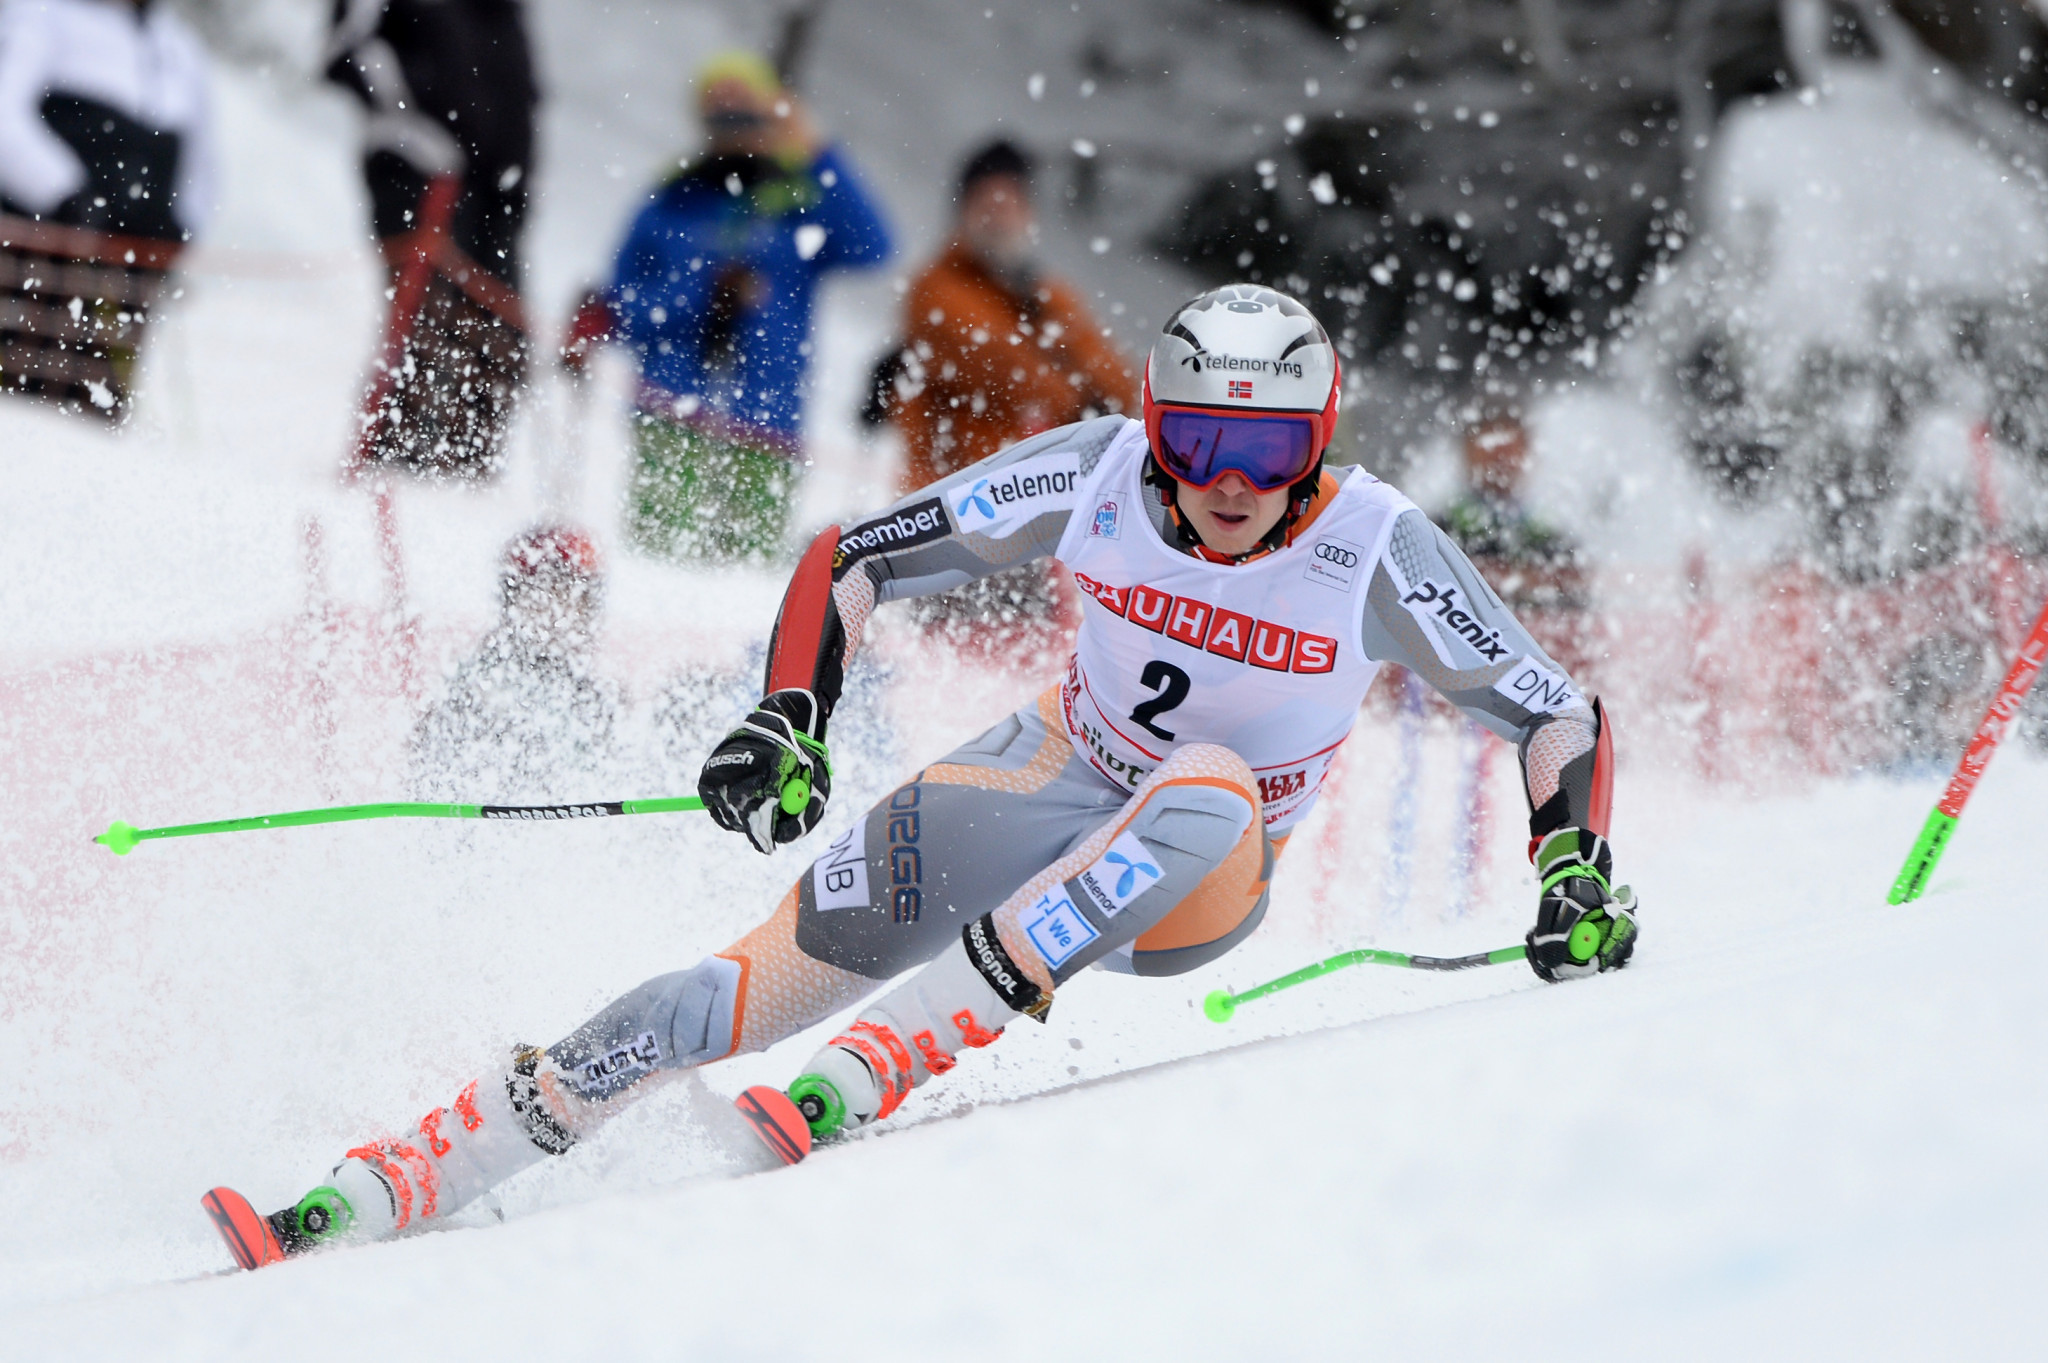 Henrik Kristoffersen of Norway leads the overall men's slalom standings ©Getty Images